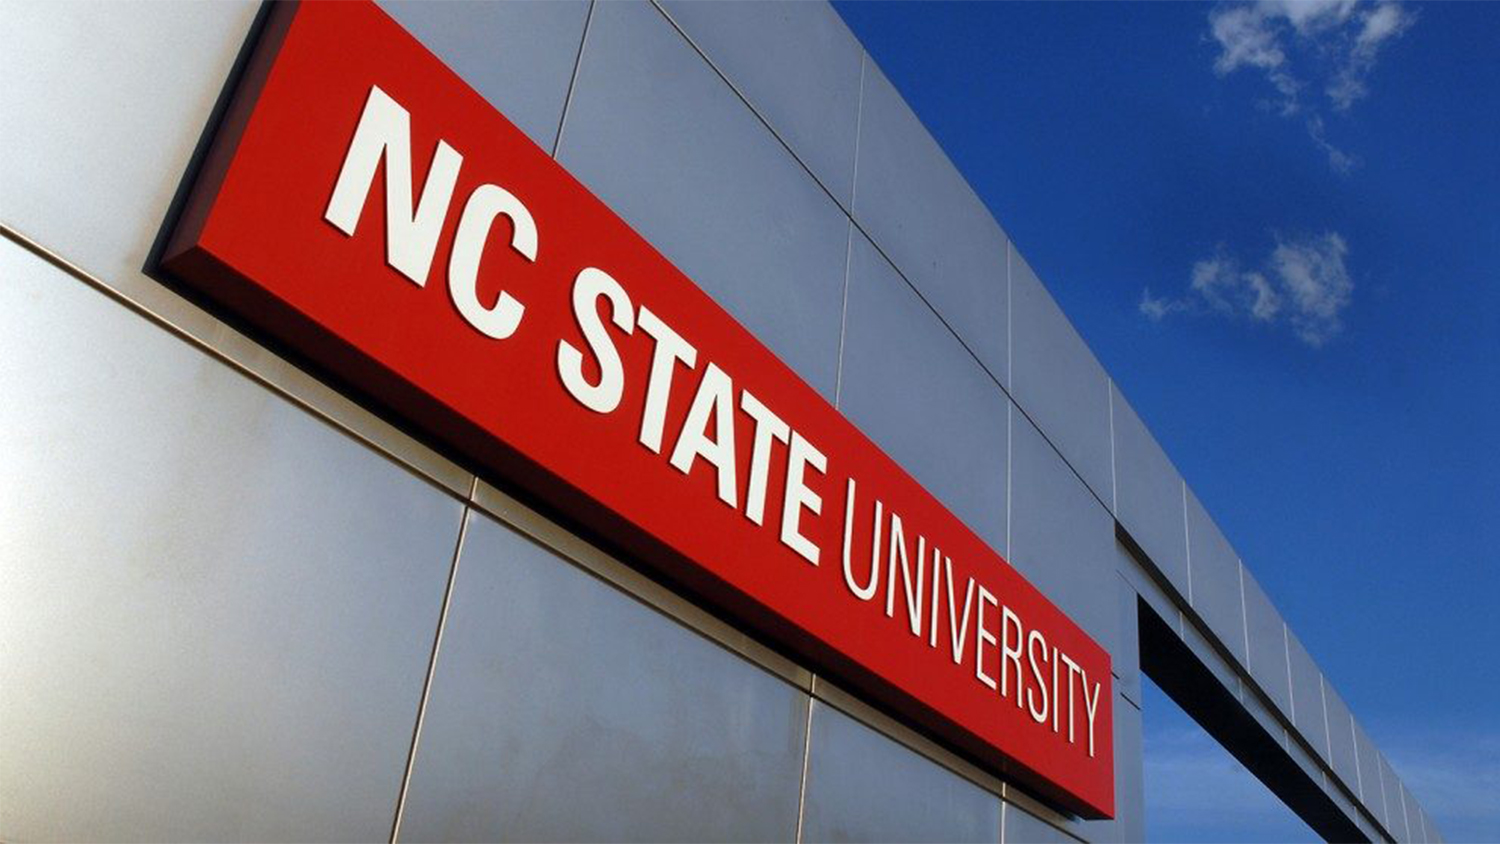 NC State Sign - Parks Recreation and Tourism Management NC State